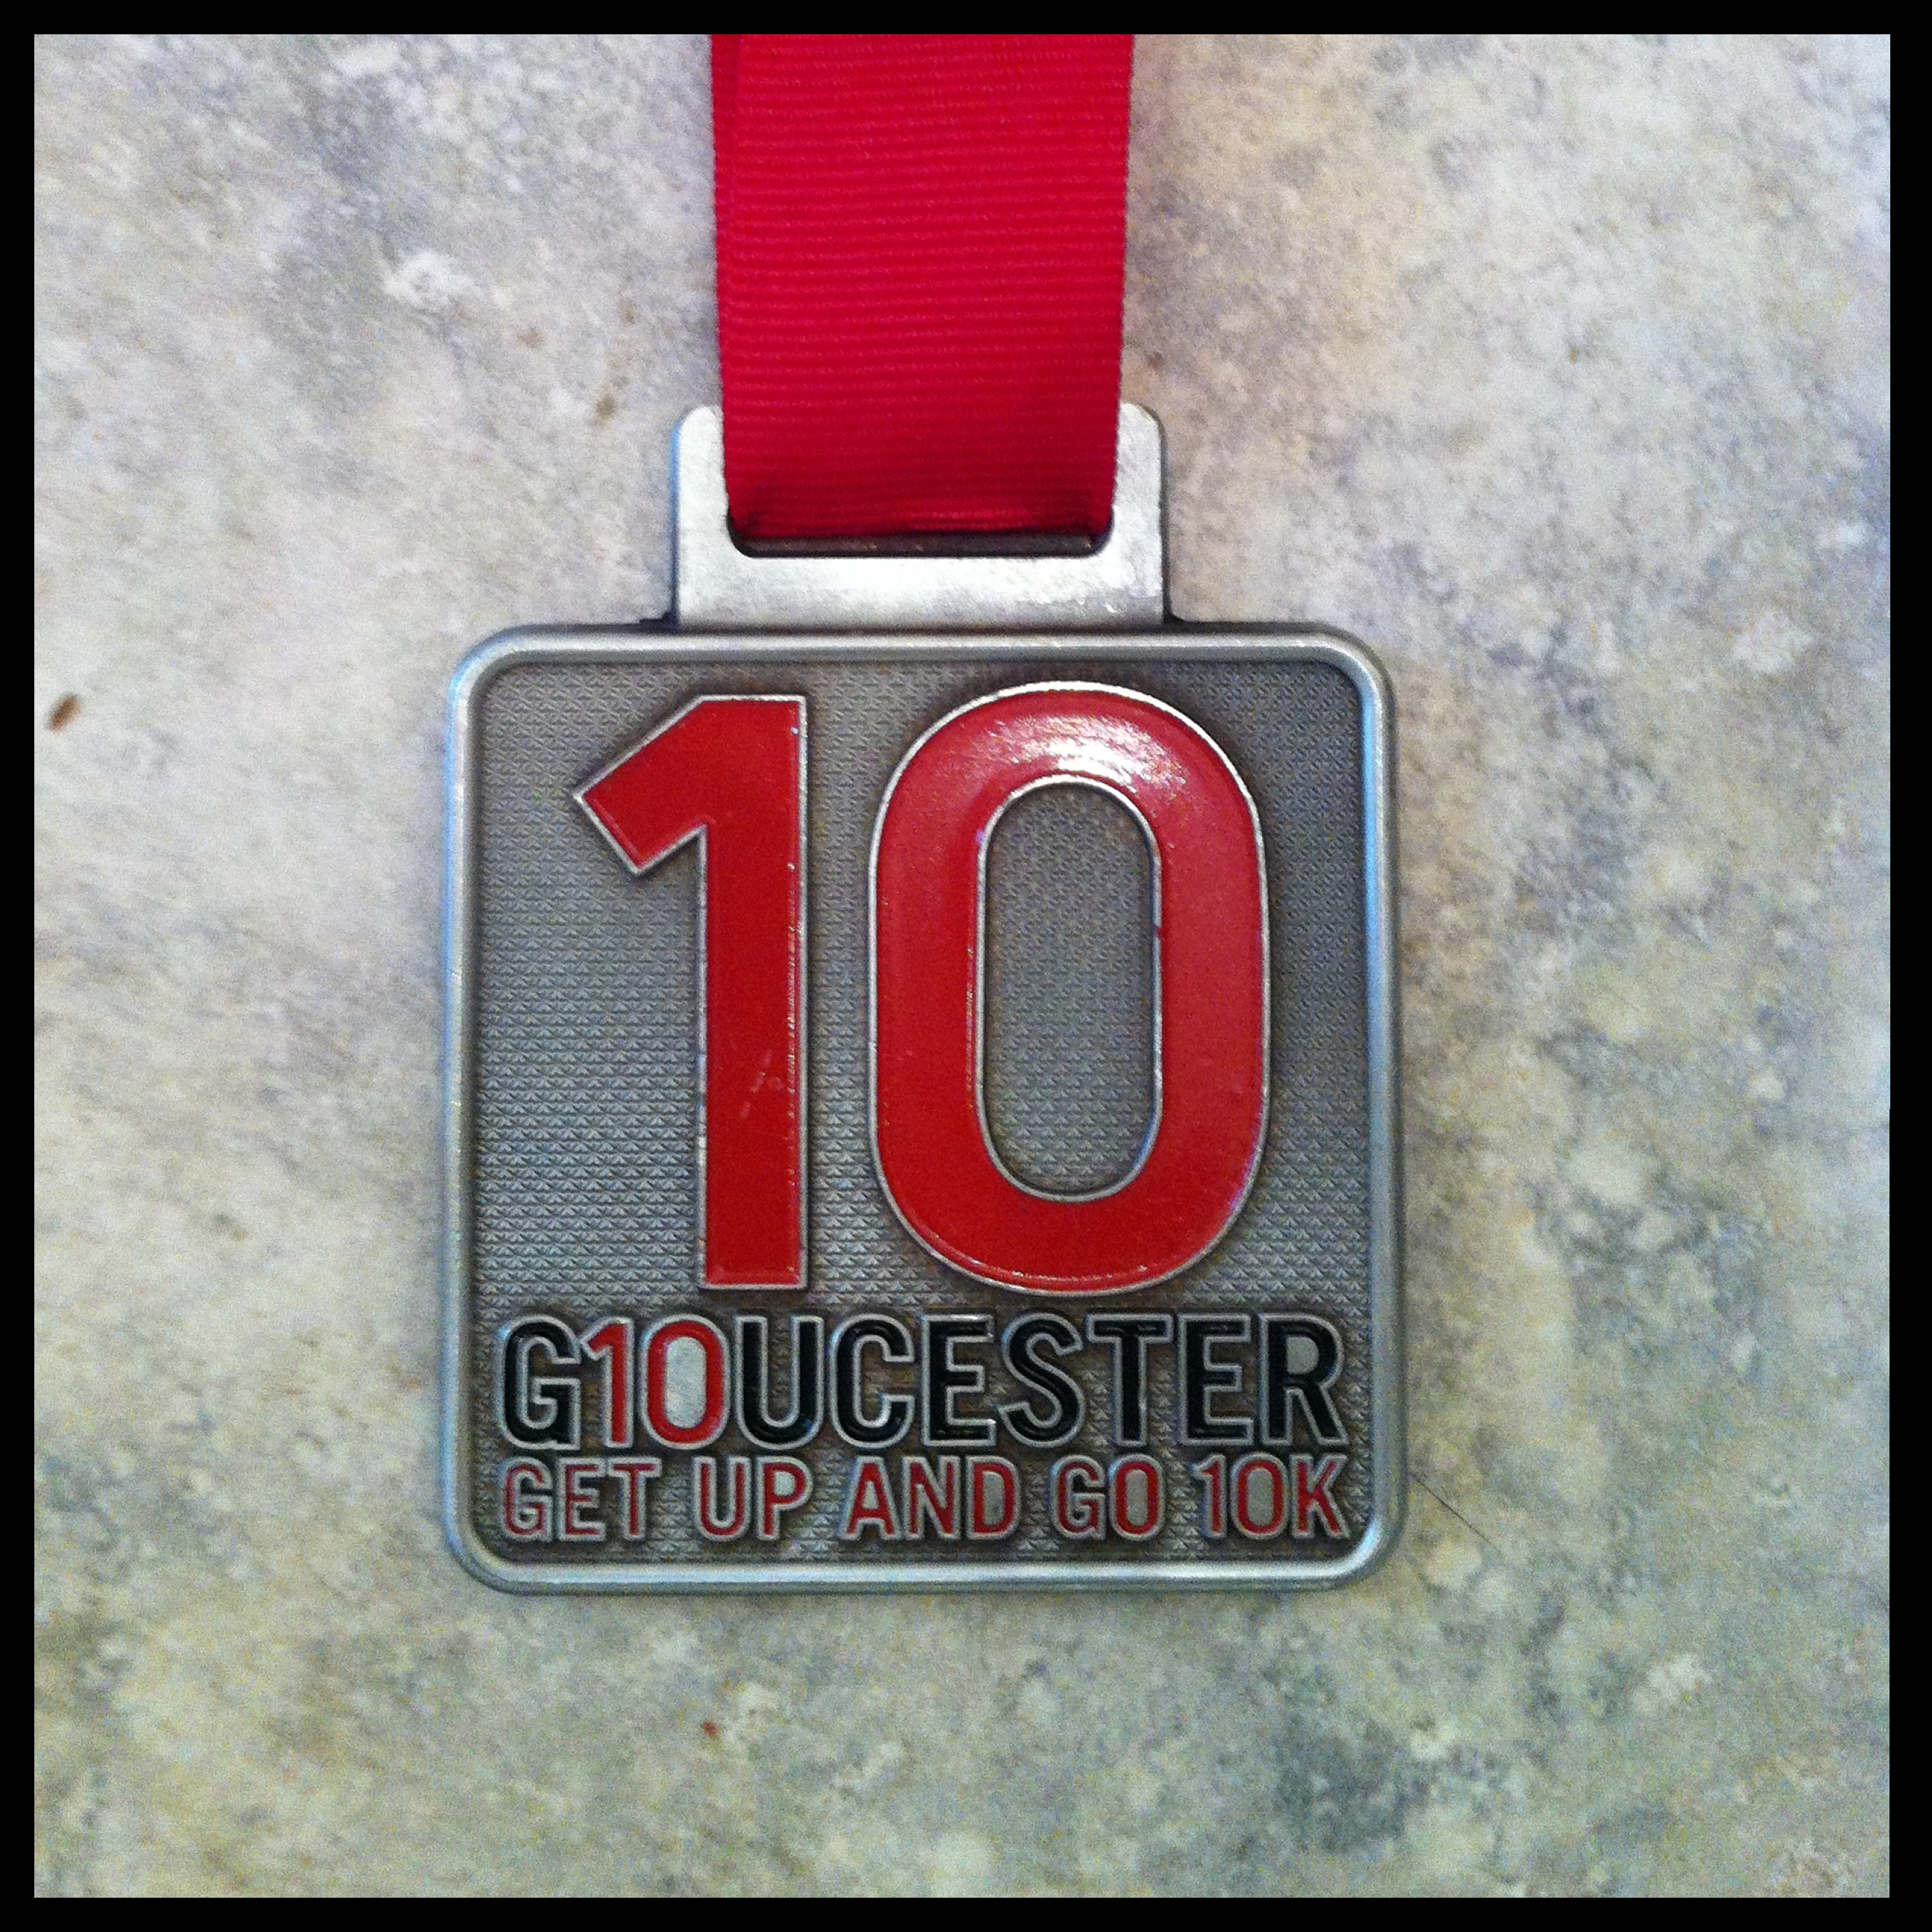 2013 Miles In 2013 – Gloucester 10k, Done!